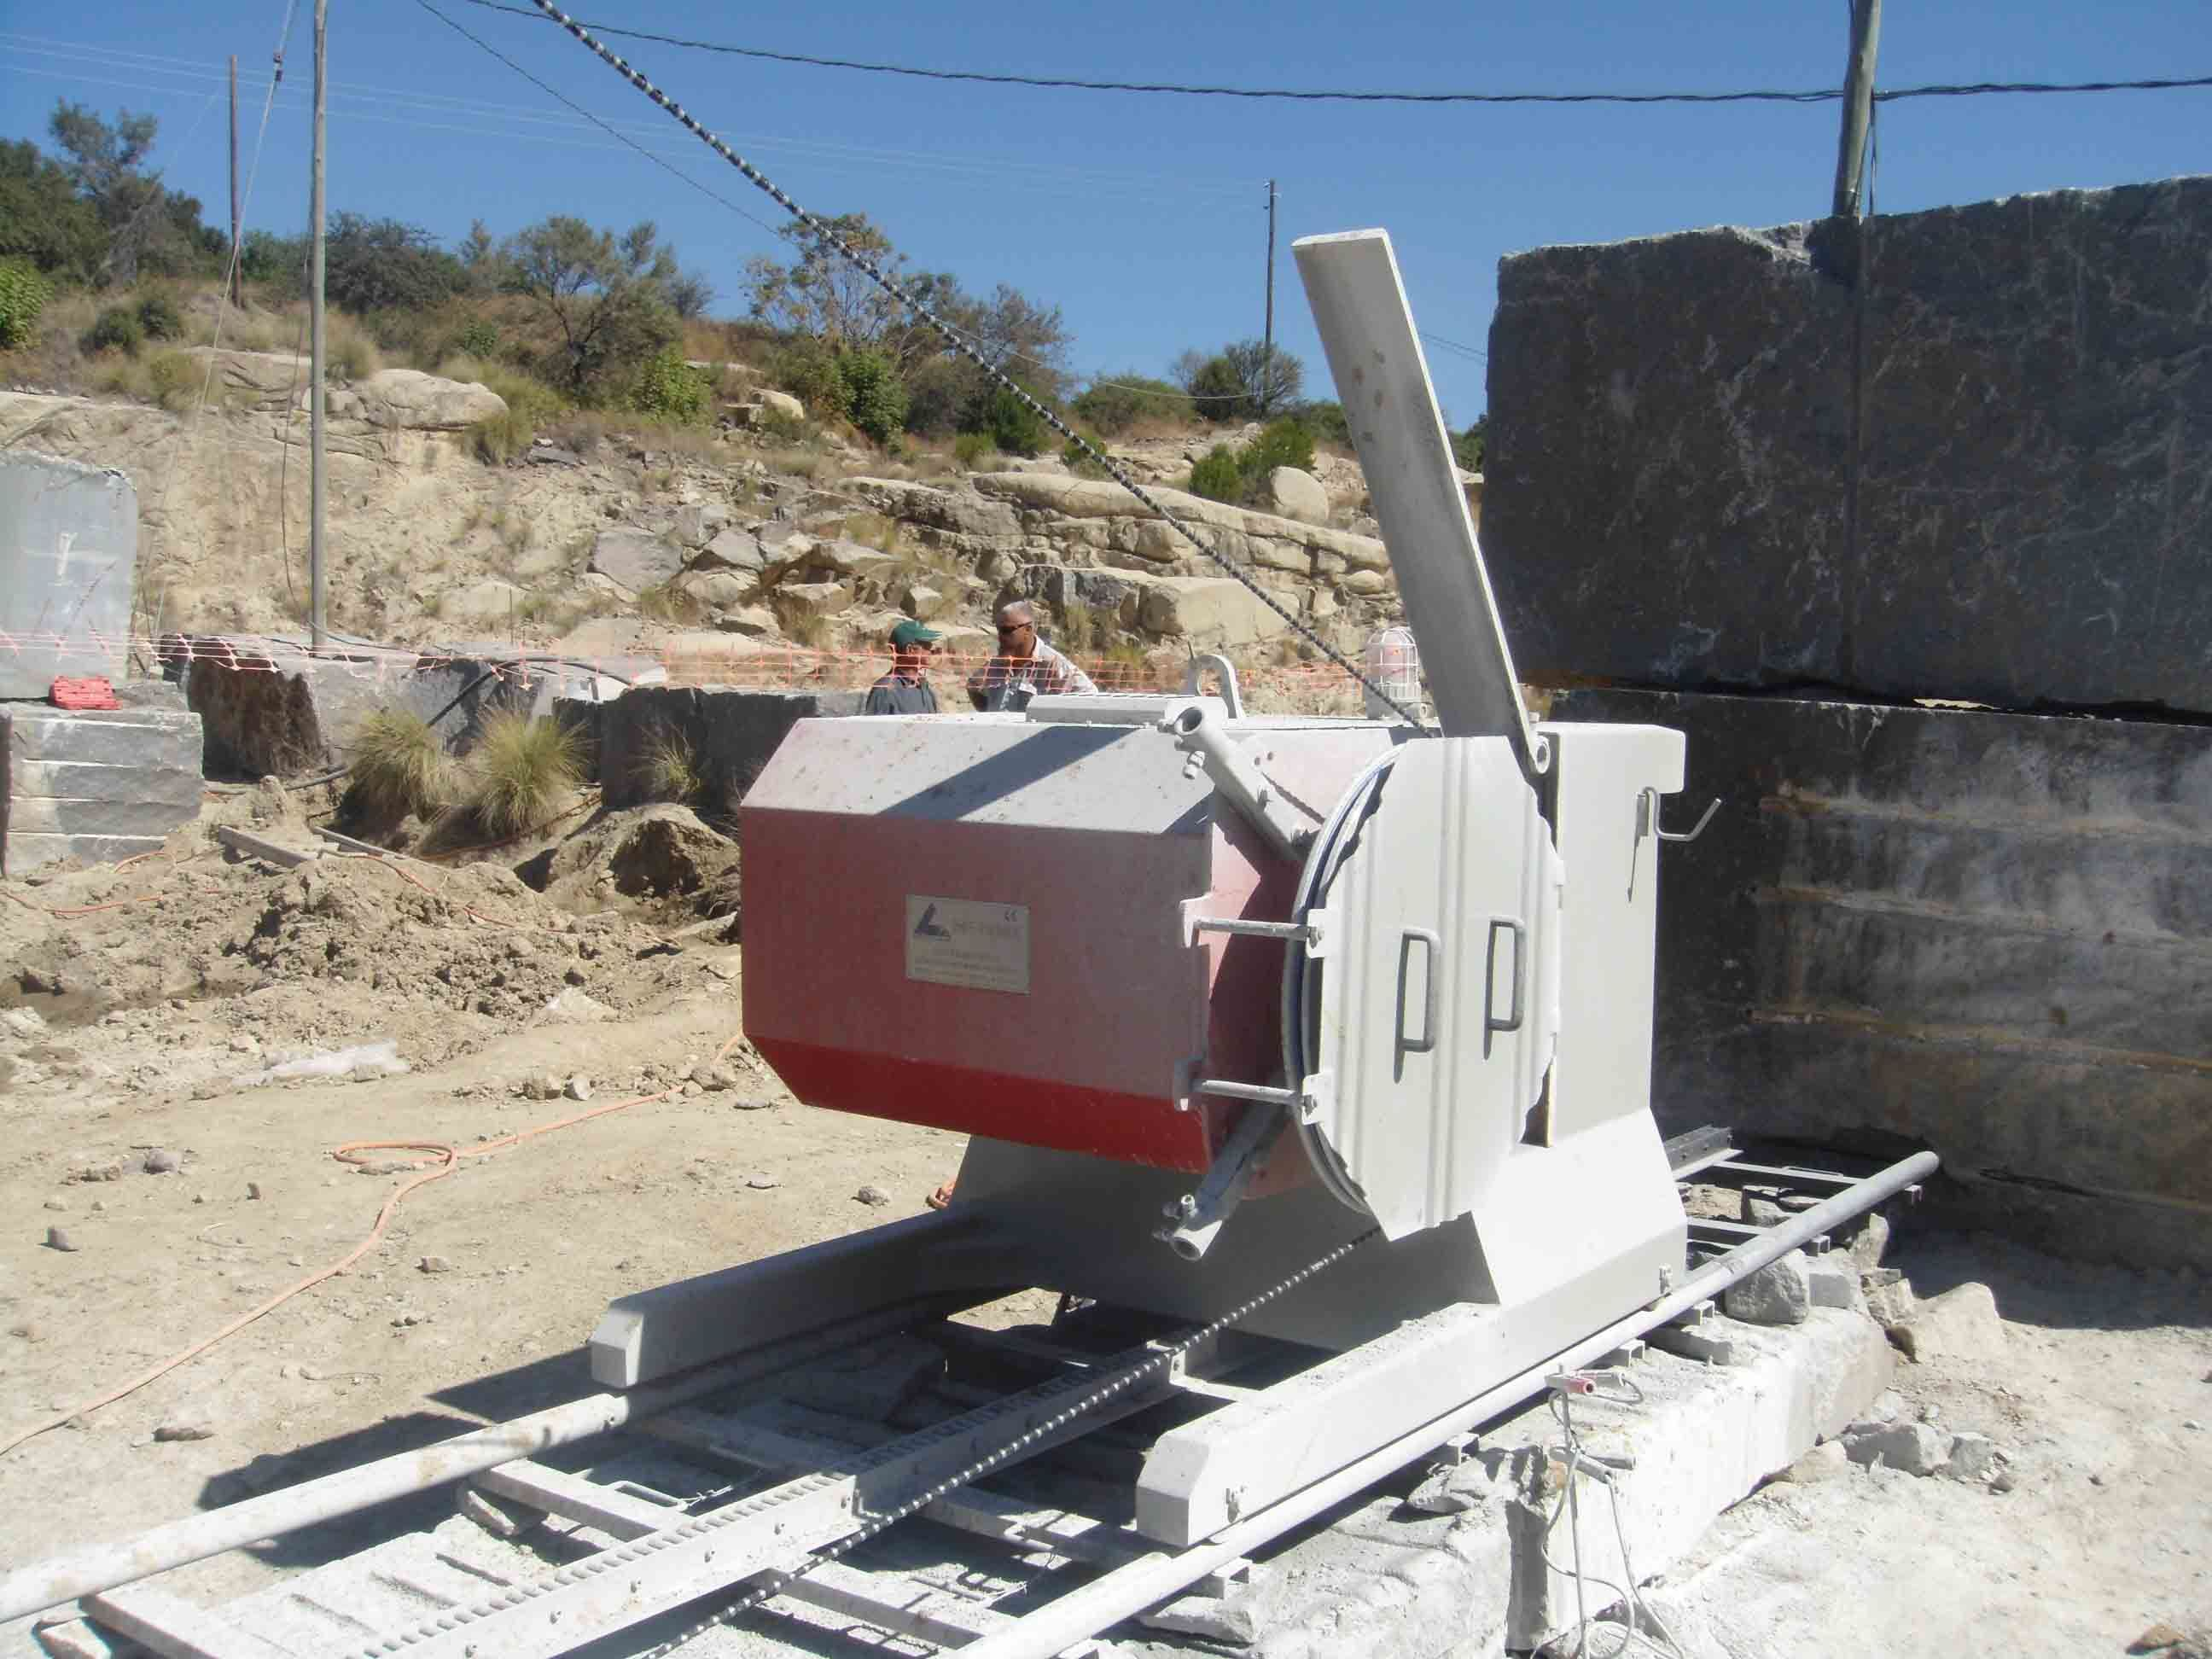 75kws/100HP Electrical Drive Wire Saw Machine for Mining or Quarry ...